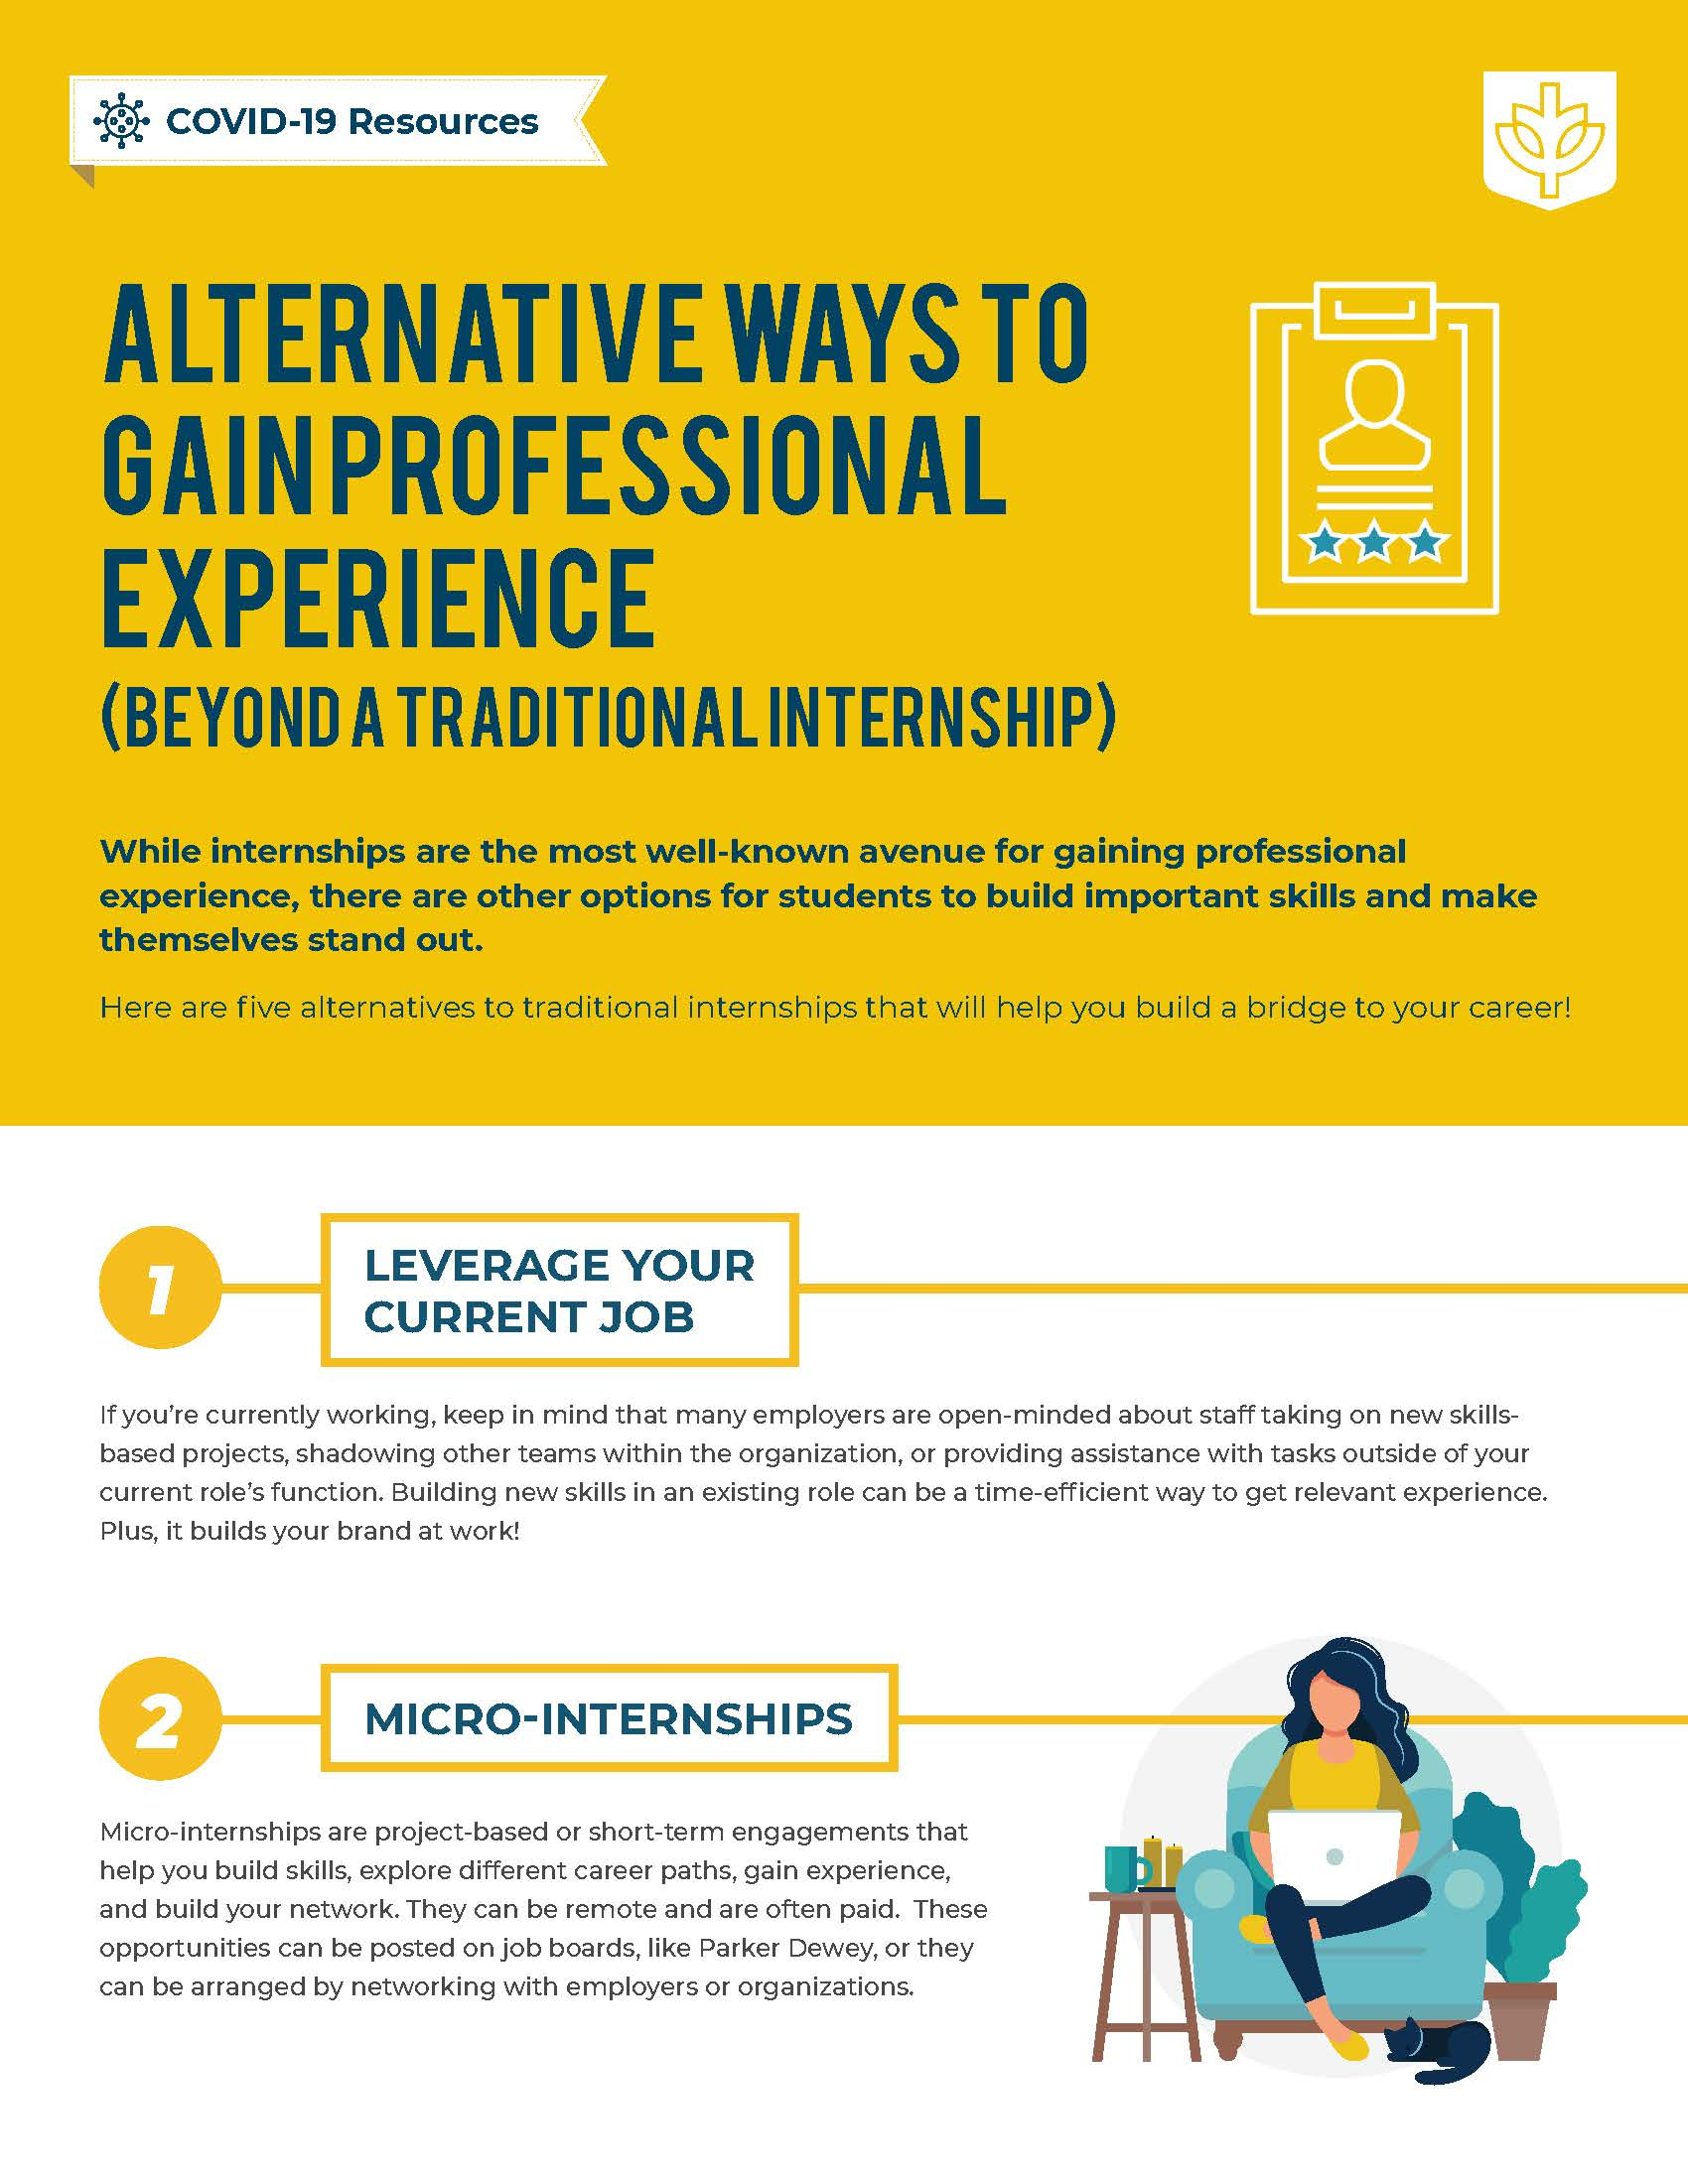 Alternative Ways to Gain Experience